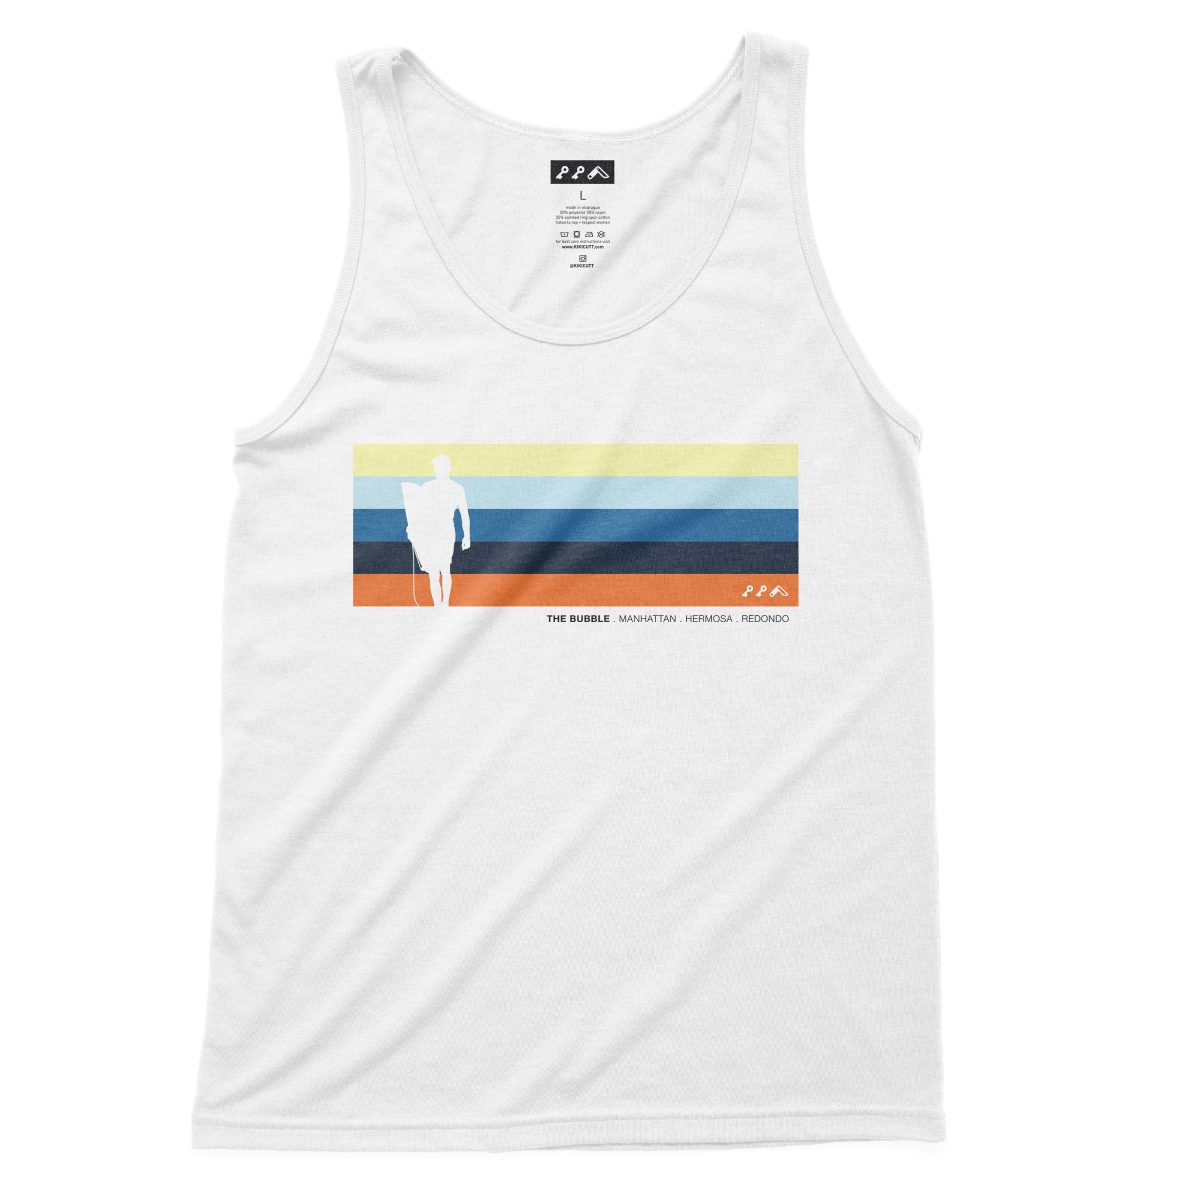 the bubble redondo hermosa manhattan beach tank tops in white at kikicutt.com